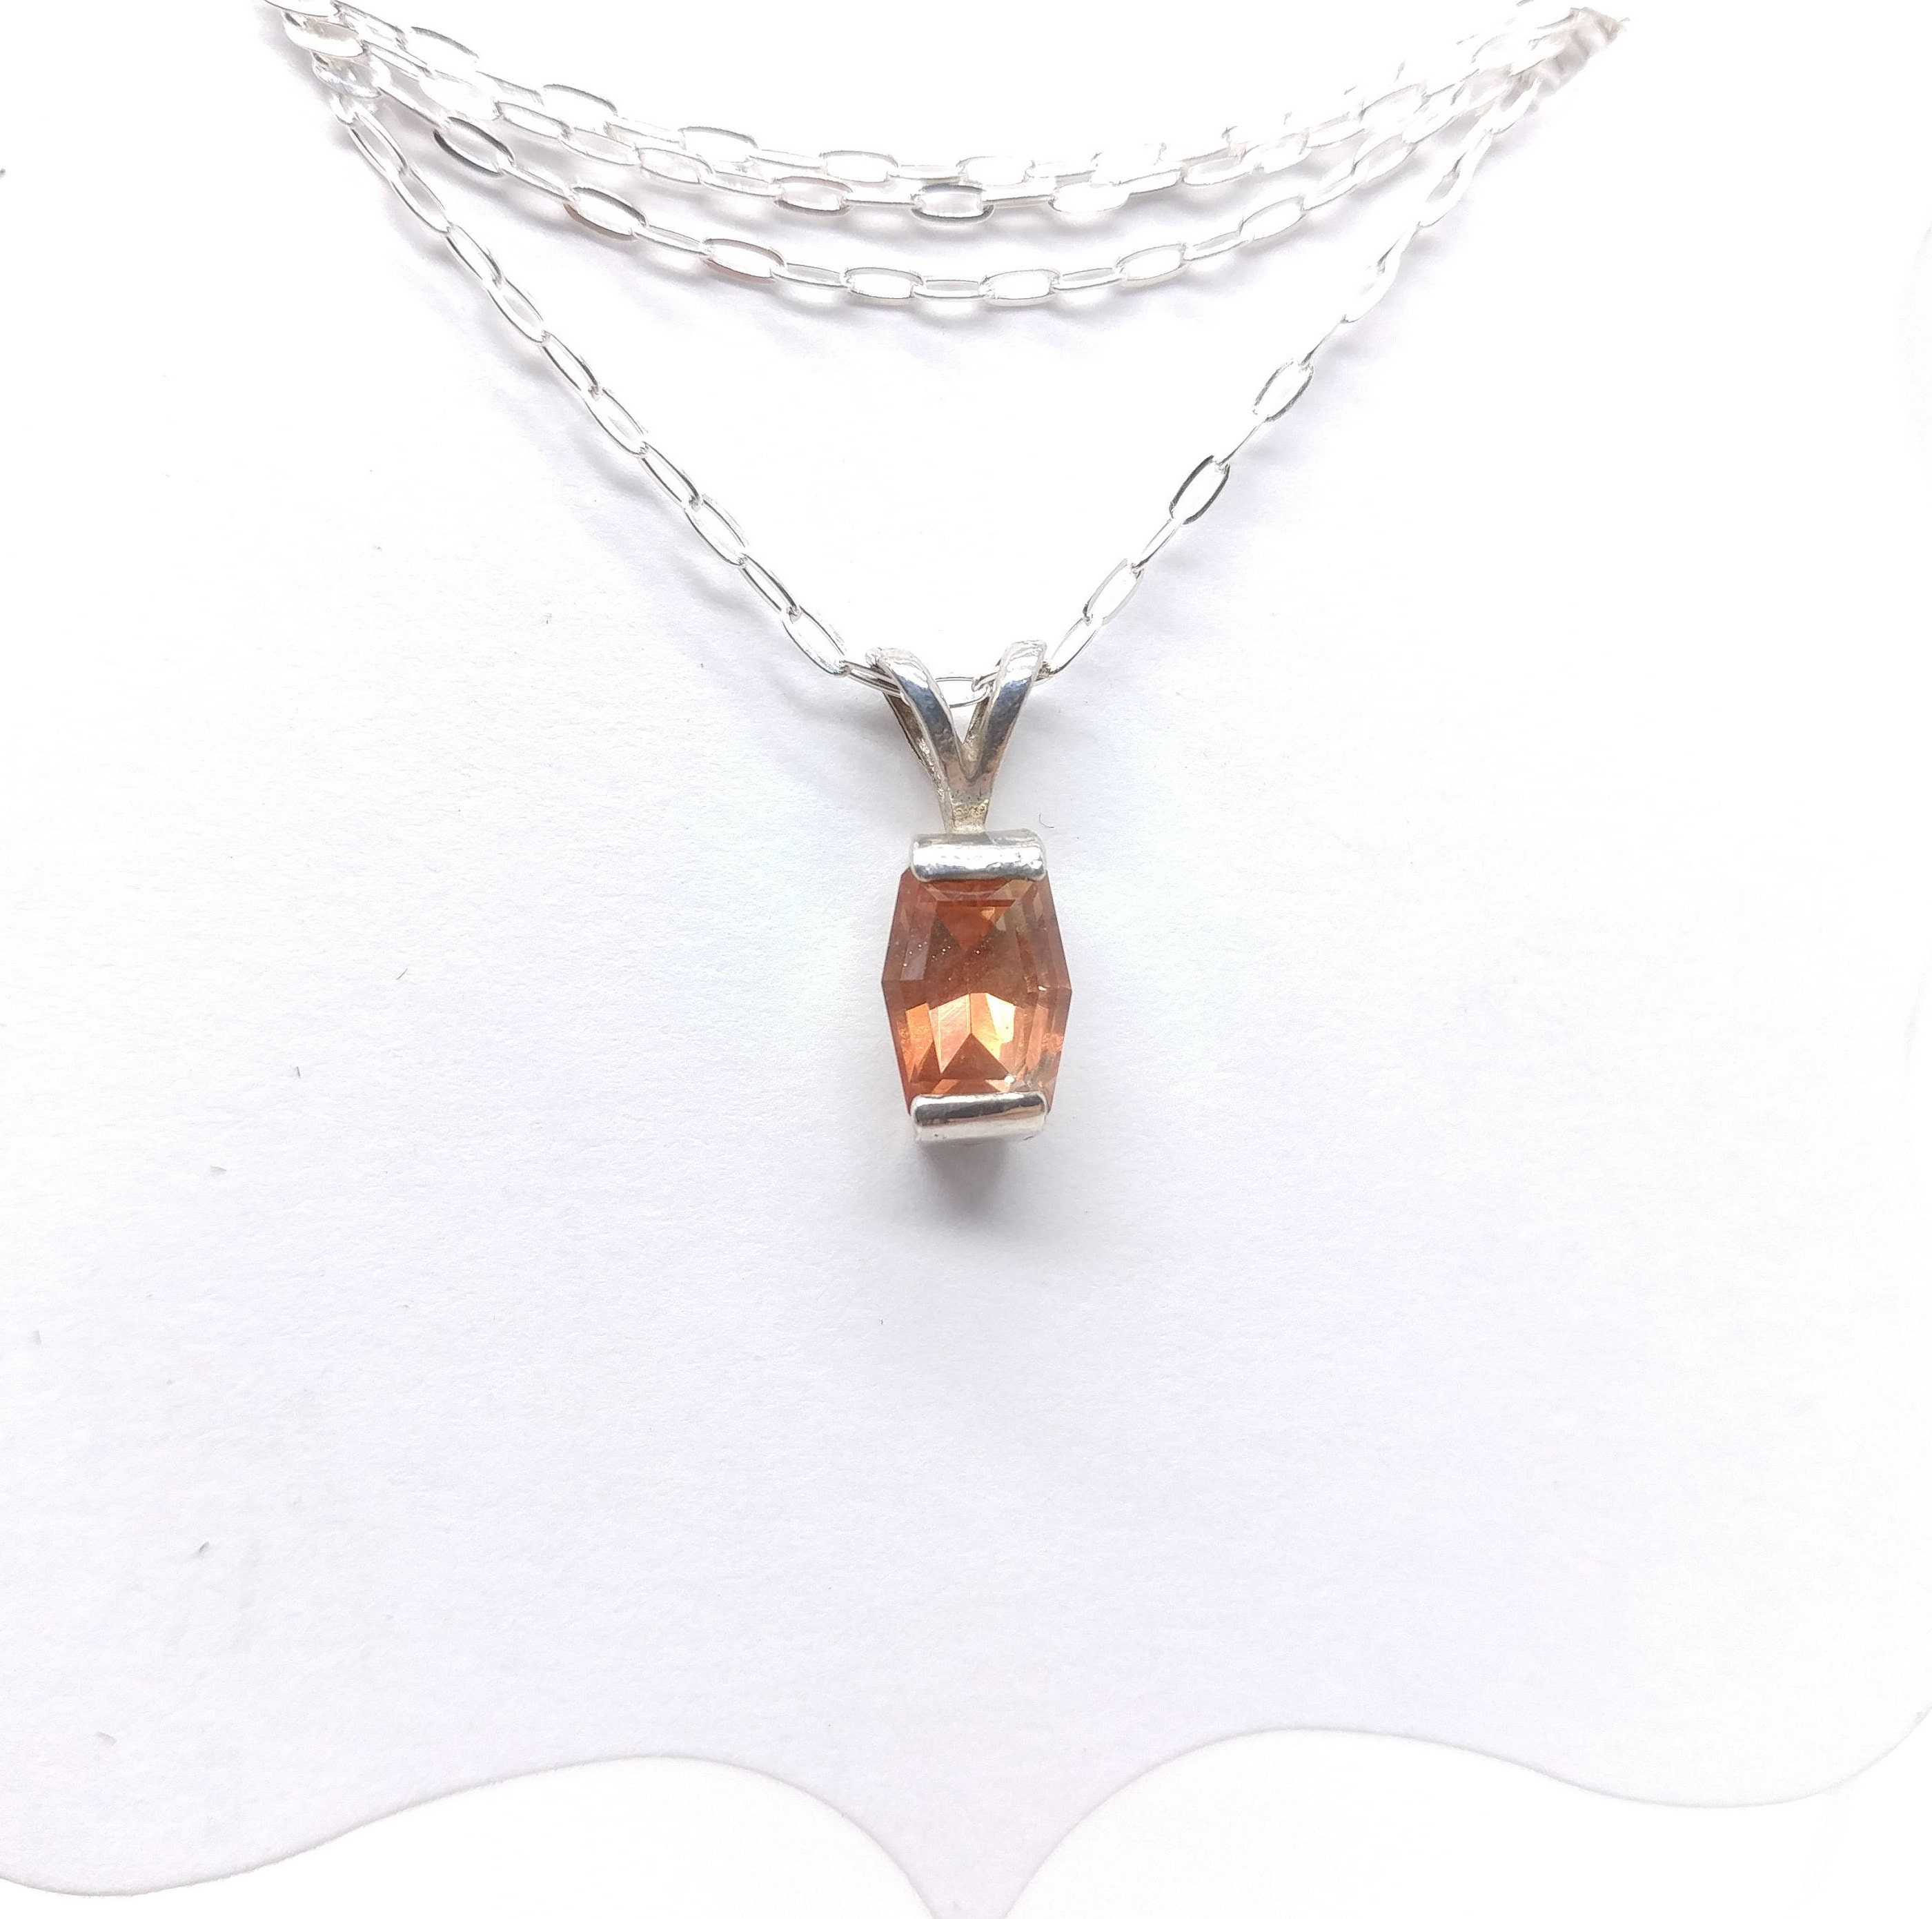 spiritual reiki sun sunstone pendant necklace is itm stone energy loading chakra image